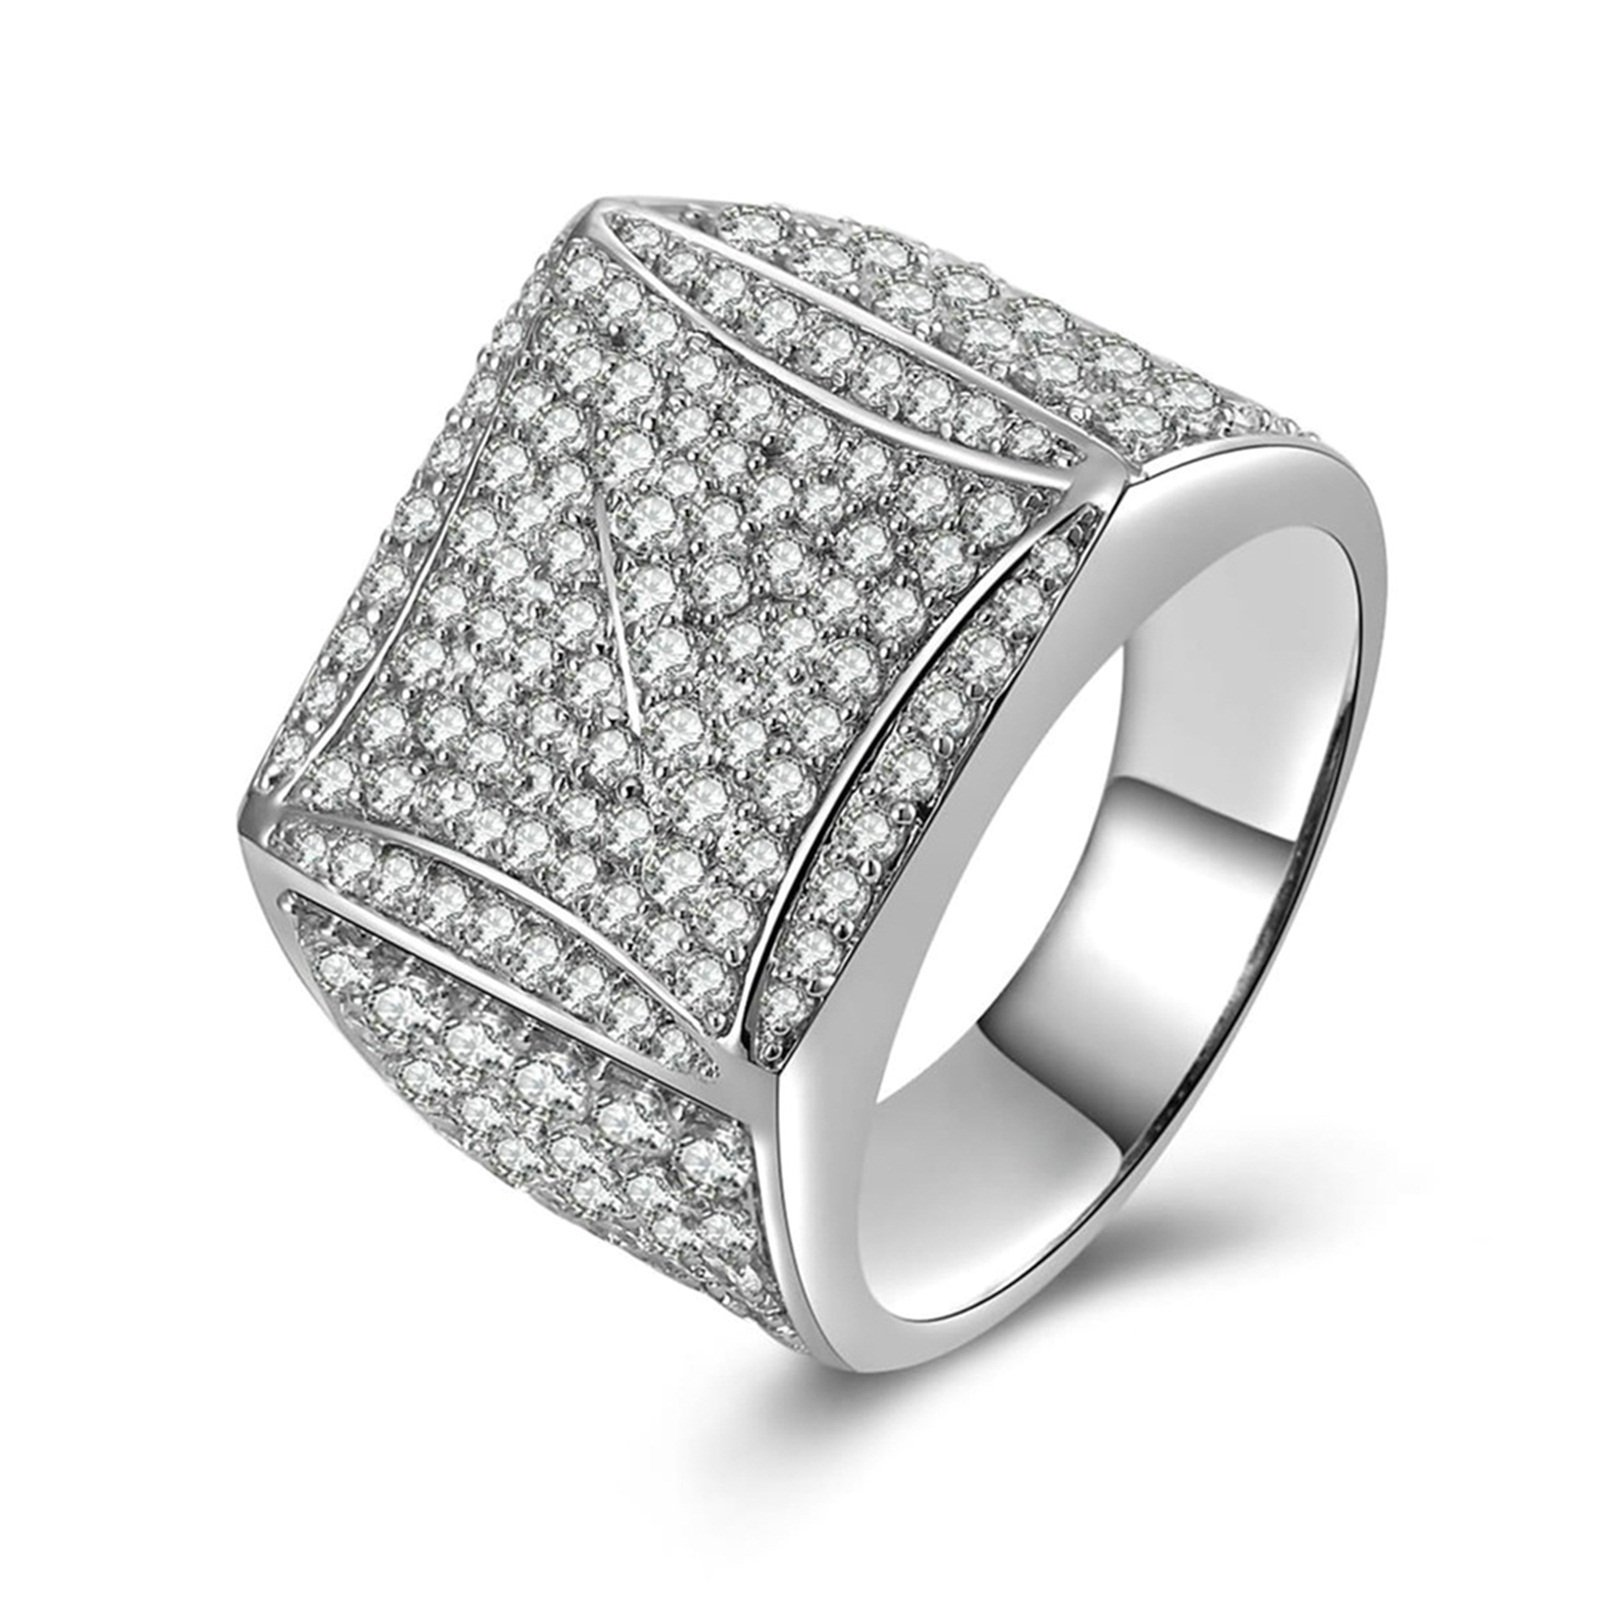 Beydodo Ring Engagement Diamond Iced Out Ring Round White Cubic Zirconia Size 11 Anniversary Gift